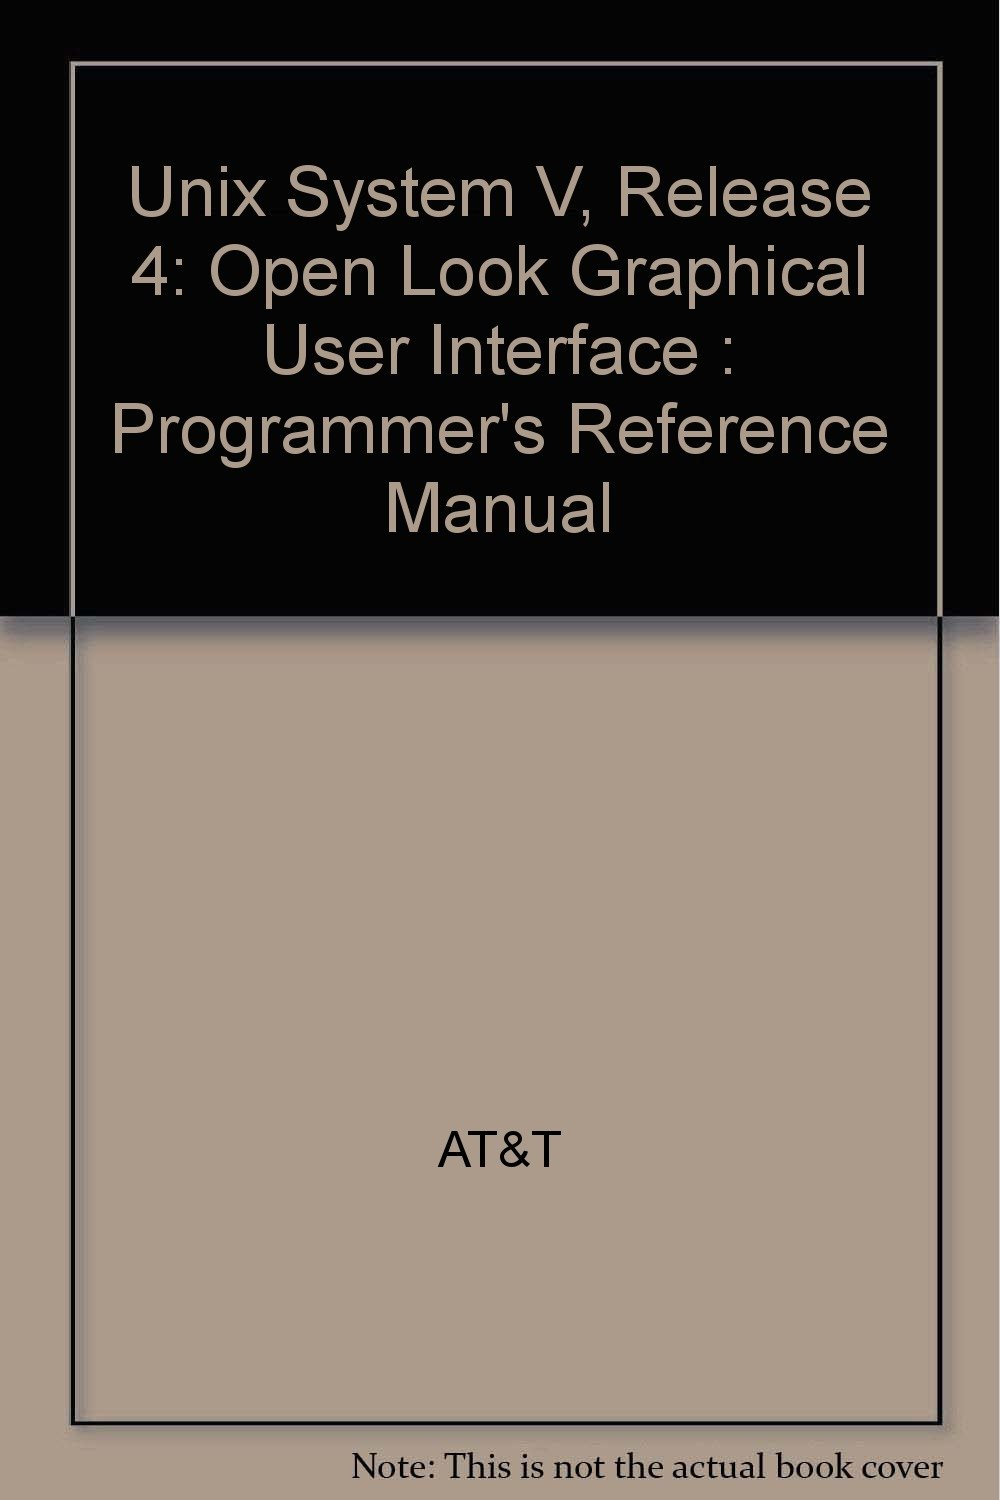 Buy Unix System V, Release 4: Open Look Graphical User Interface ...